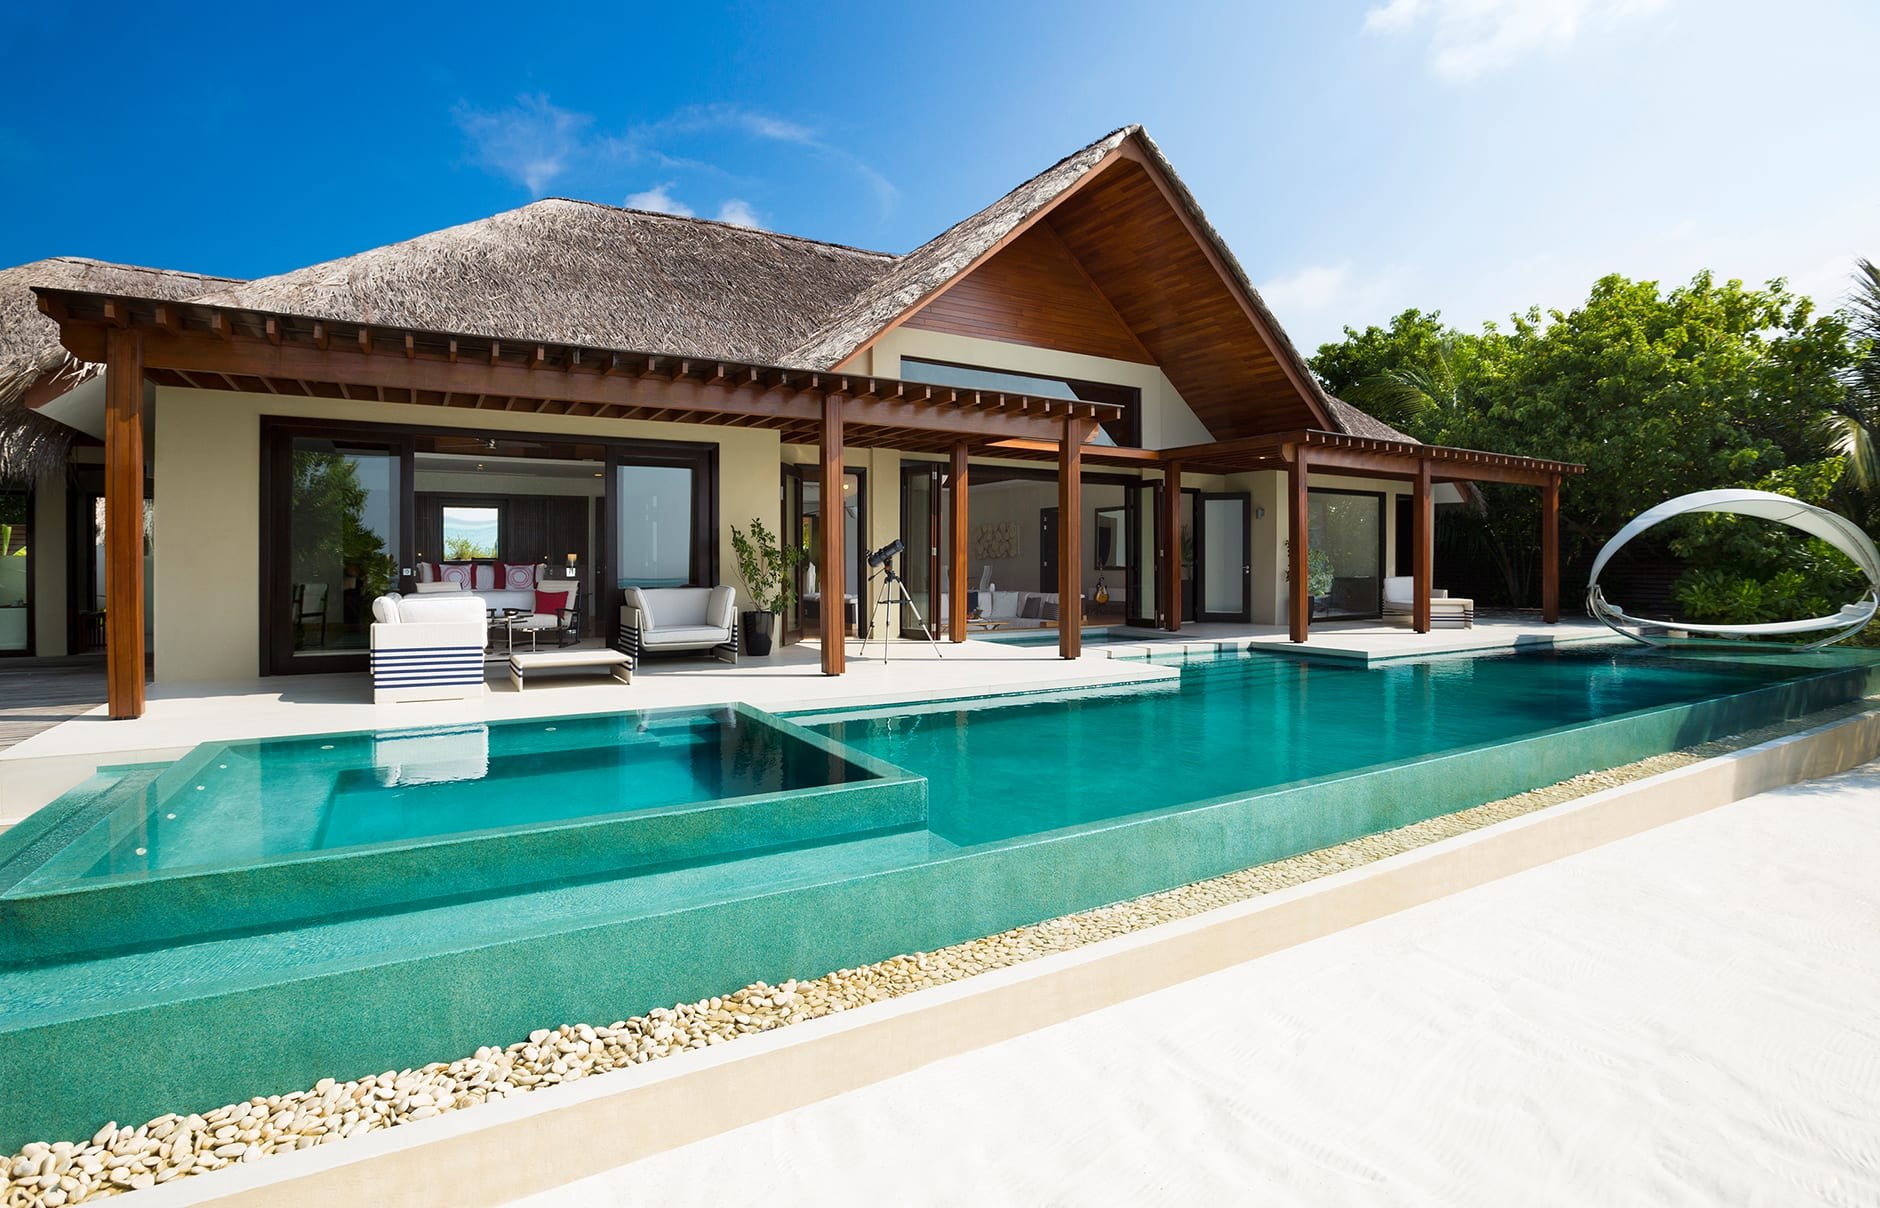 Beach Pavilion. Niyama Private Islands Maldives. Hotel Review by TravelPlusStyle. Photo © NIYAMA